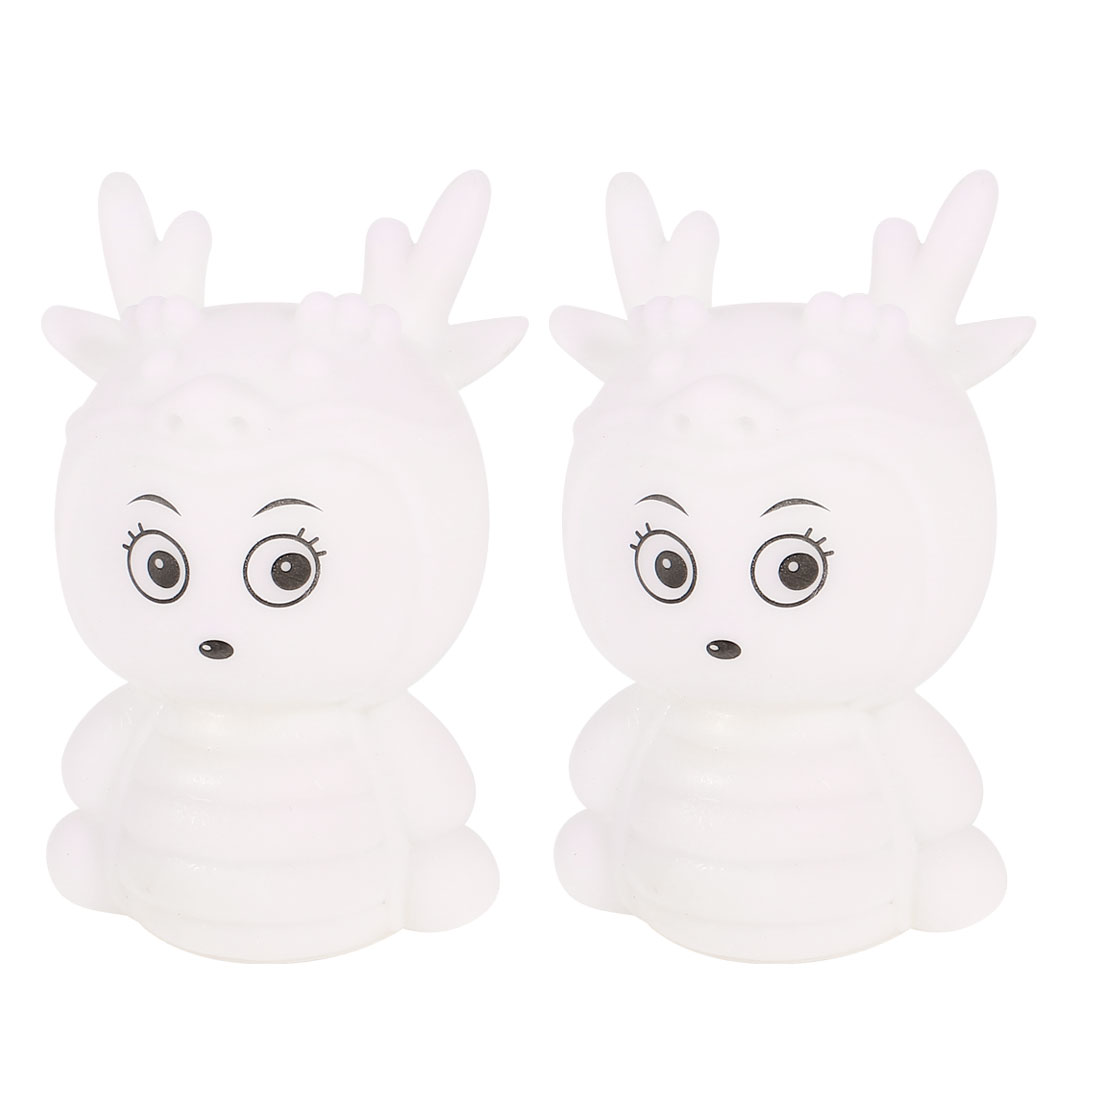 2 Pcs Dragon Baby Shaped Colorful LED Night Light Table Lamp